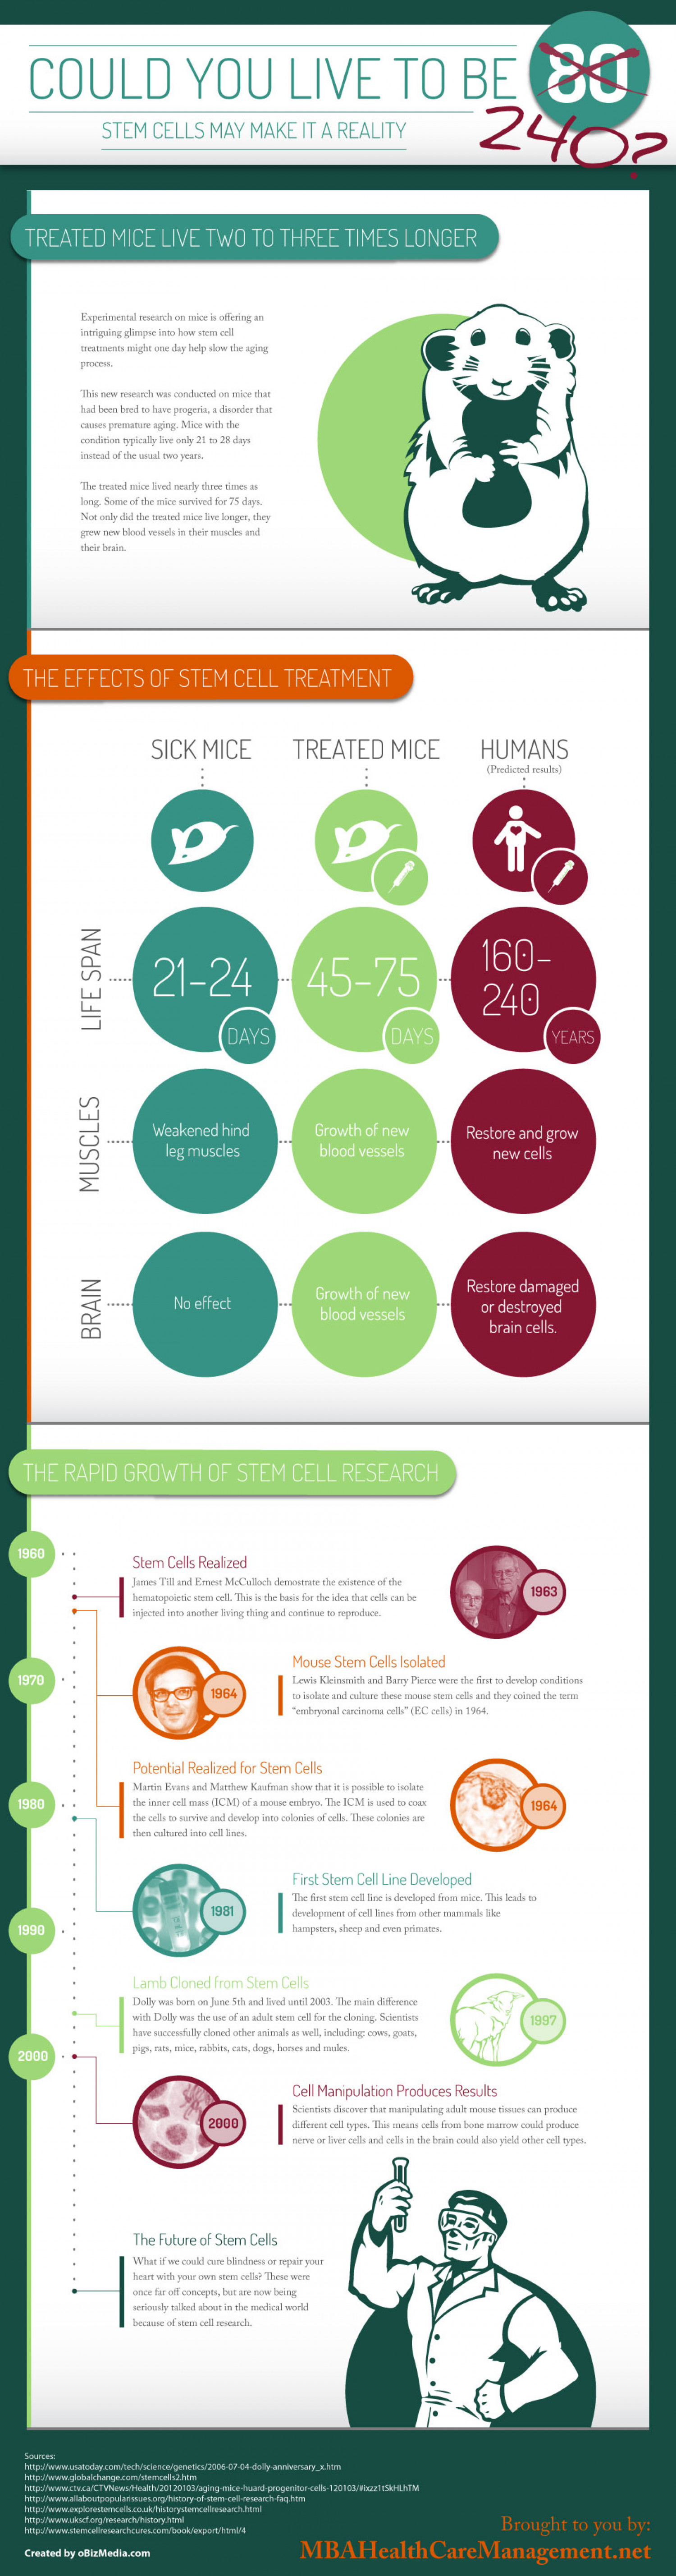 Could you live to be 240? Infographic